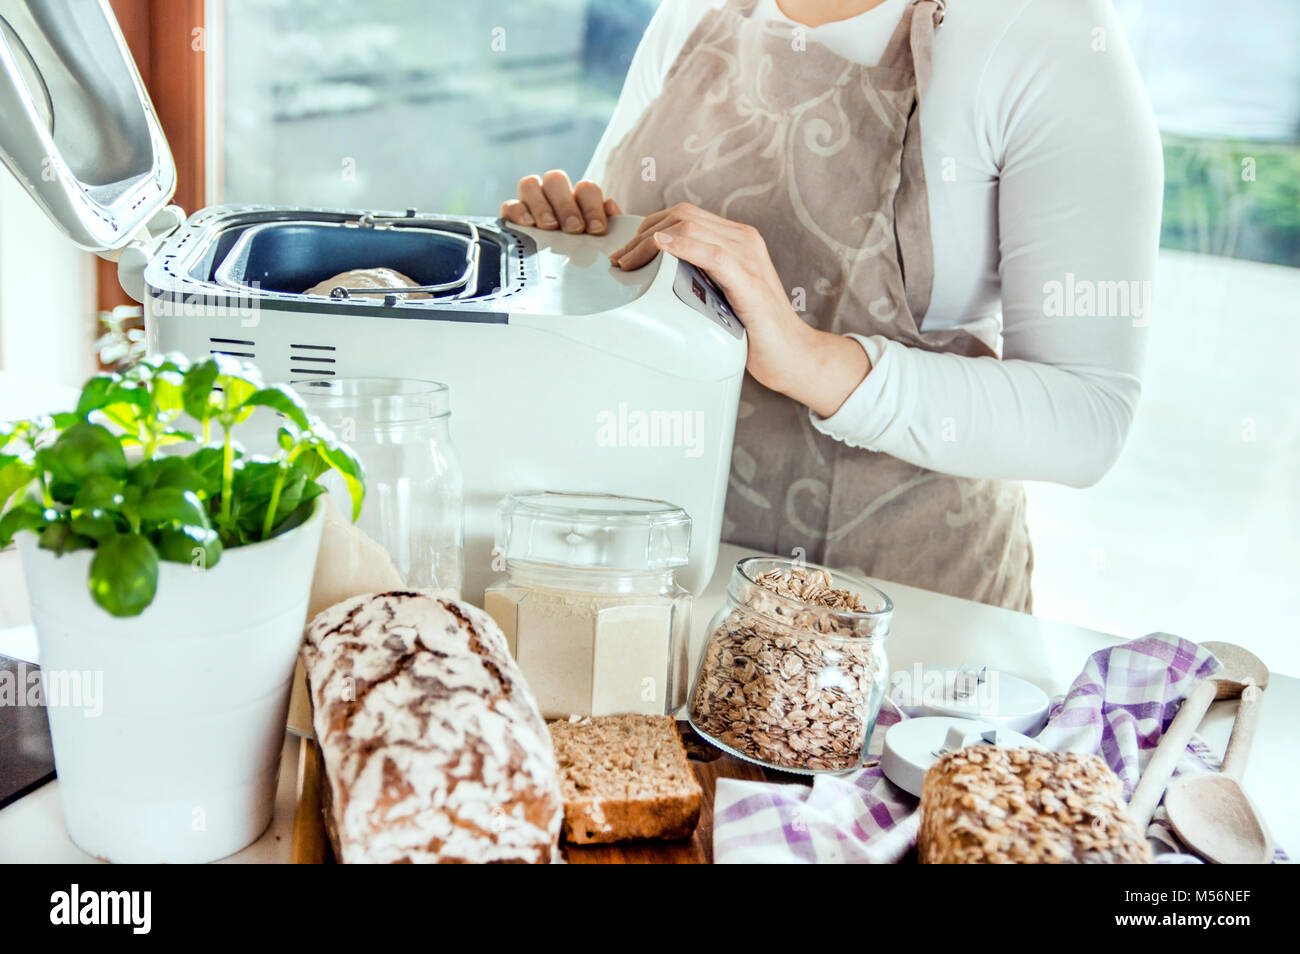 Woman in a modern kitchen among the ingredients for homemade bread prepares a machine for baking. Photo taken in Stock Photo